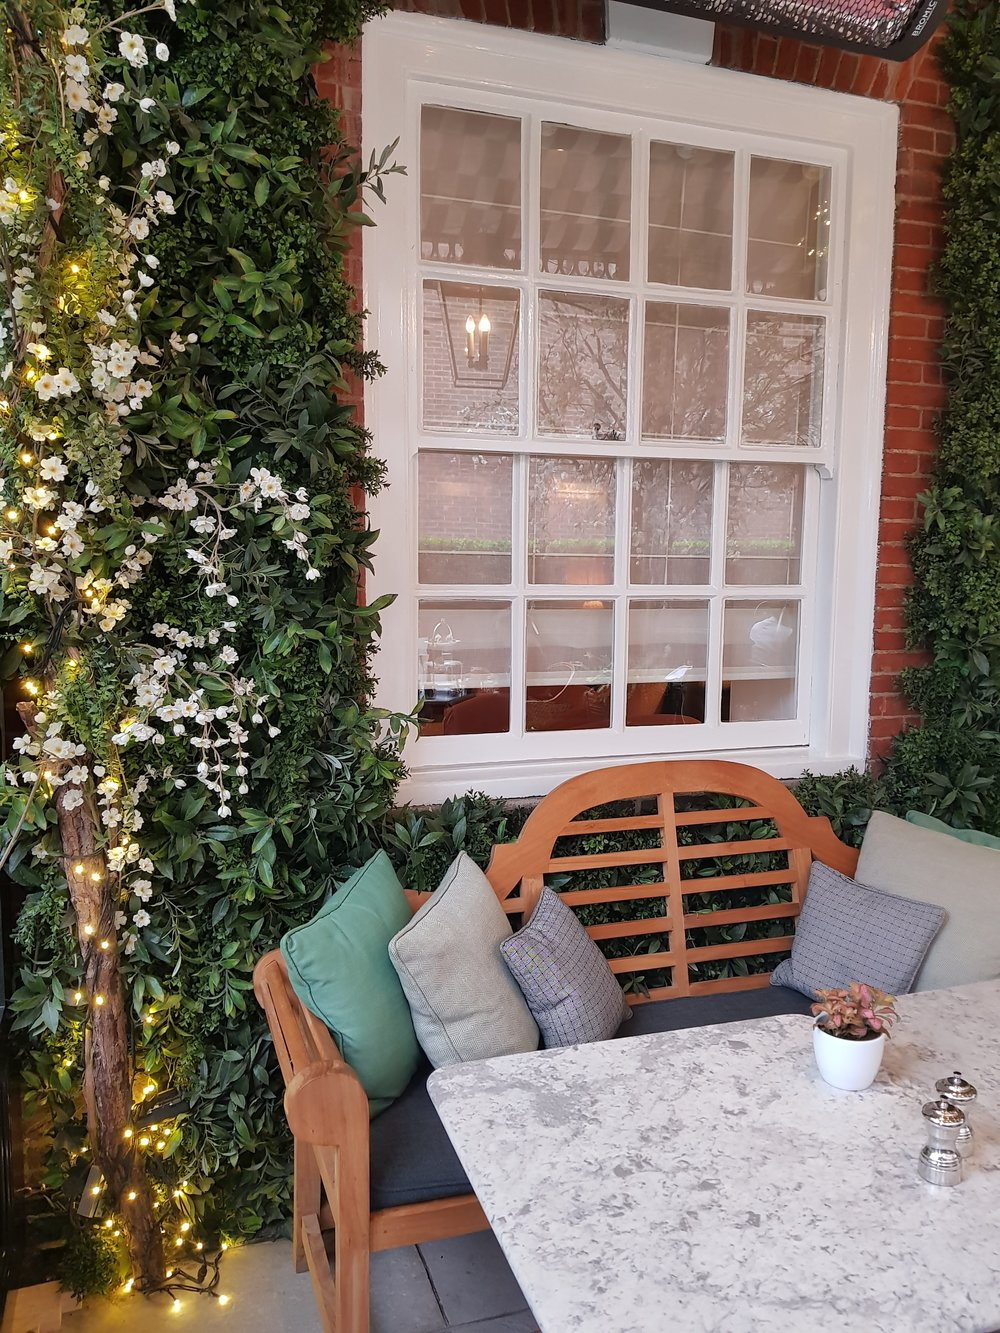 DALLOWAY TERRACE LONDON RESTAURANT REVIEW